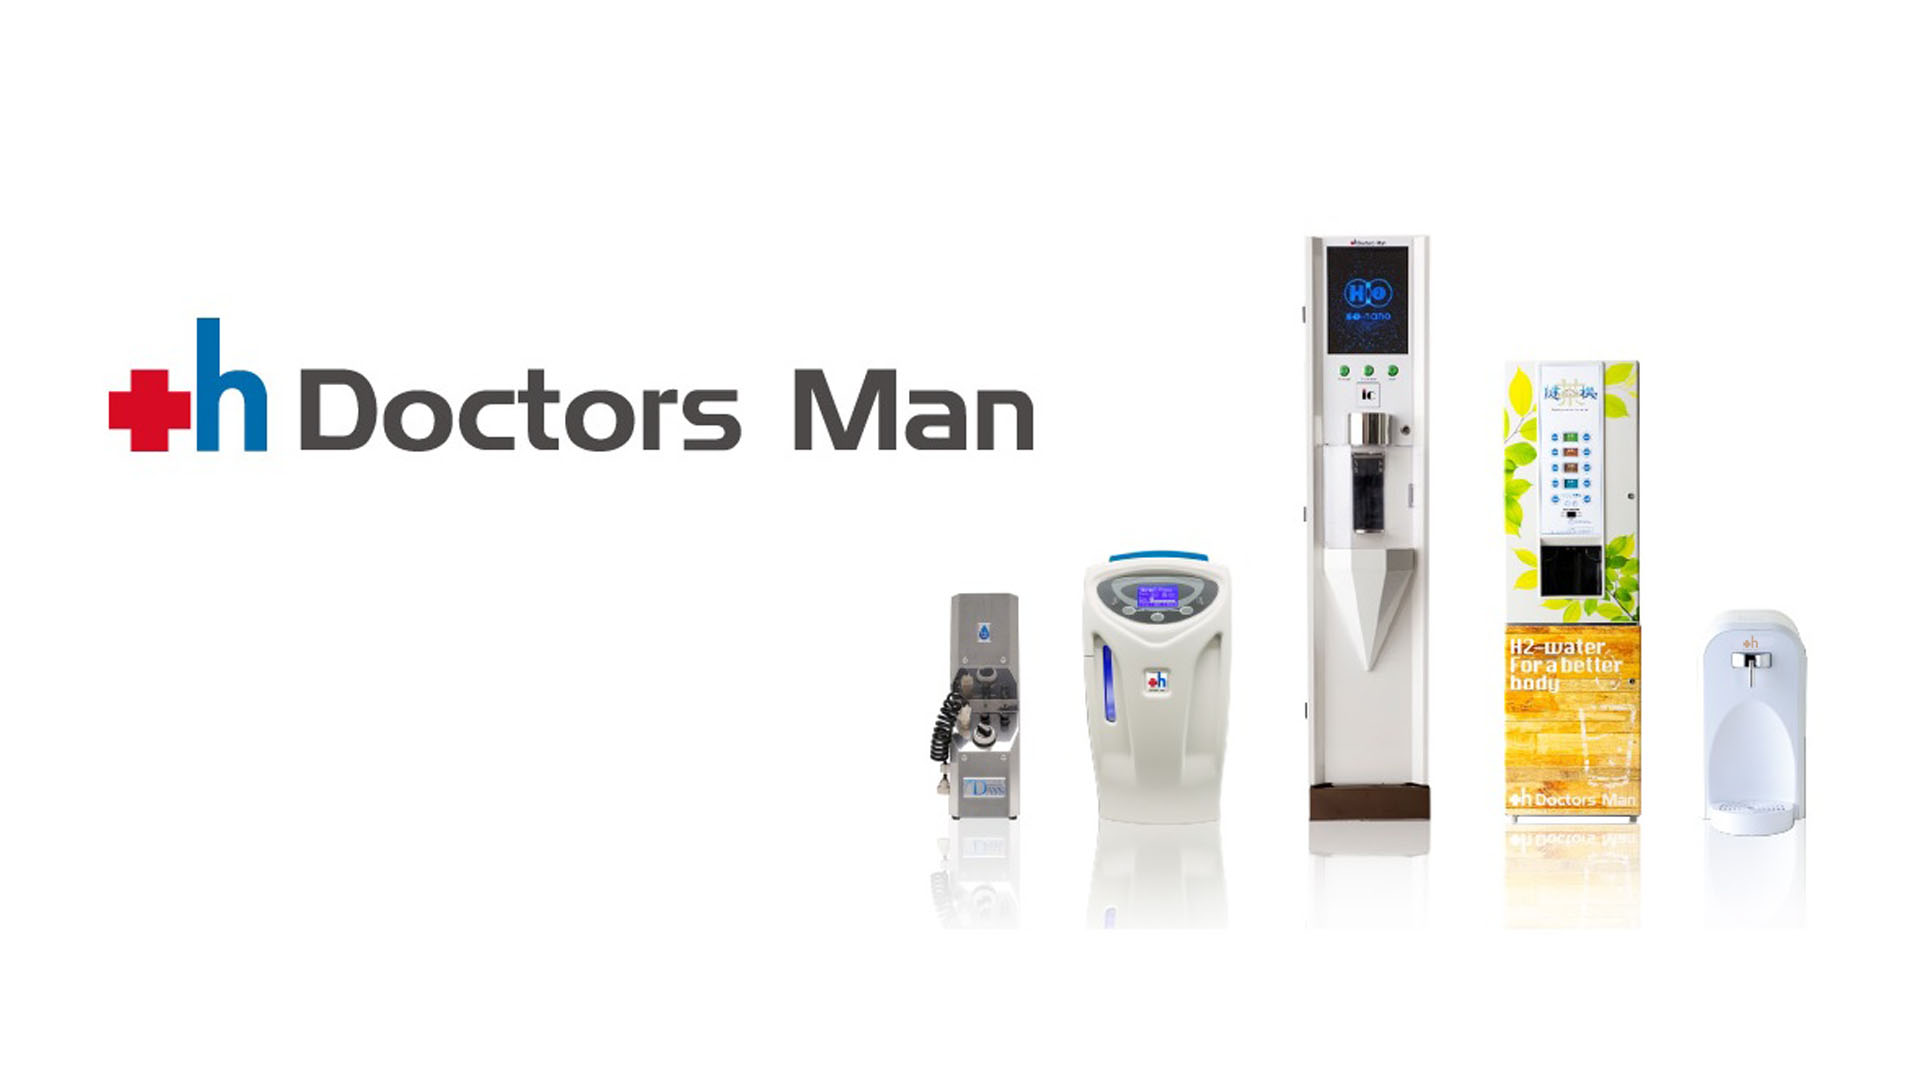 doctor's man products